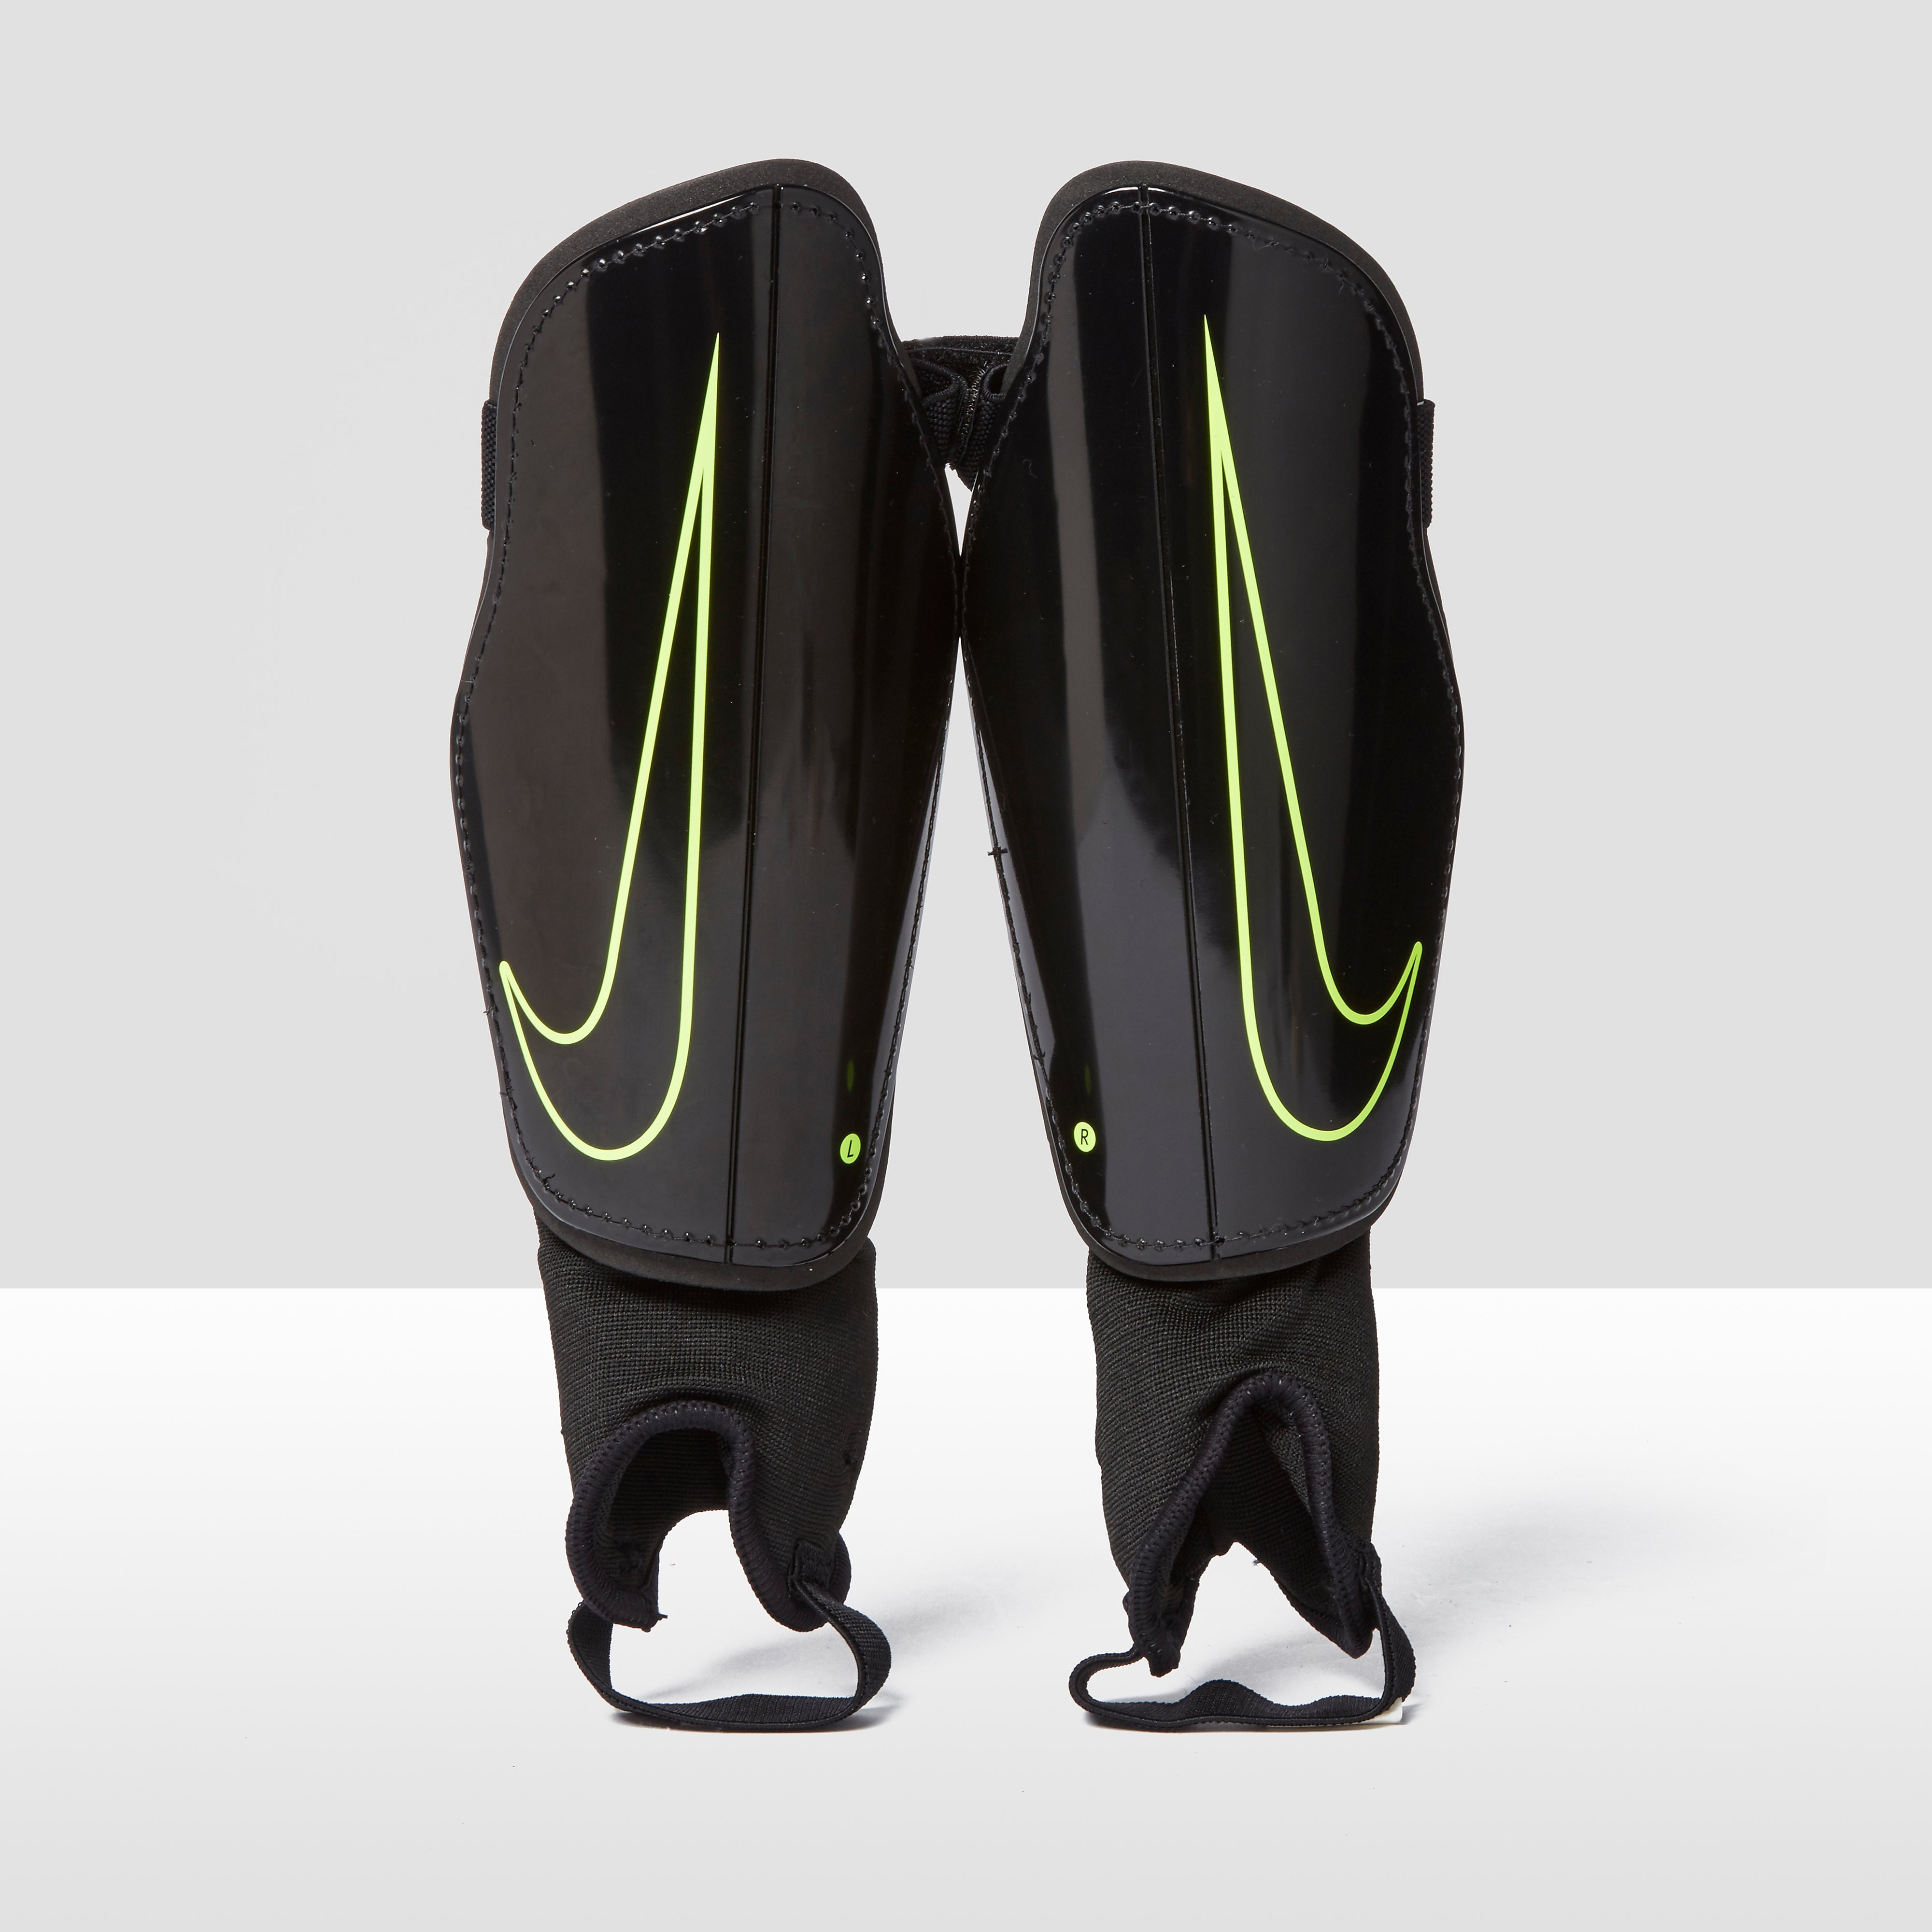 Nike Men's Charge Shield Shin Guards